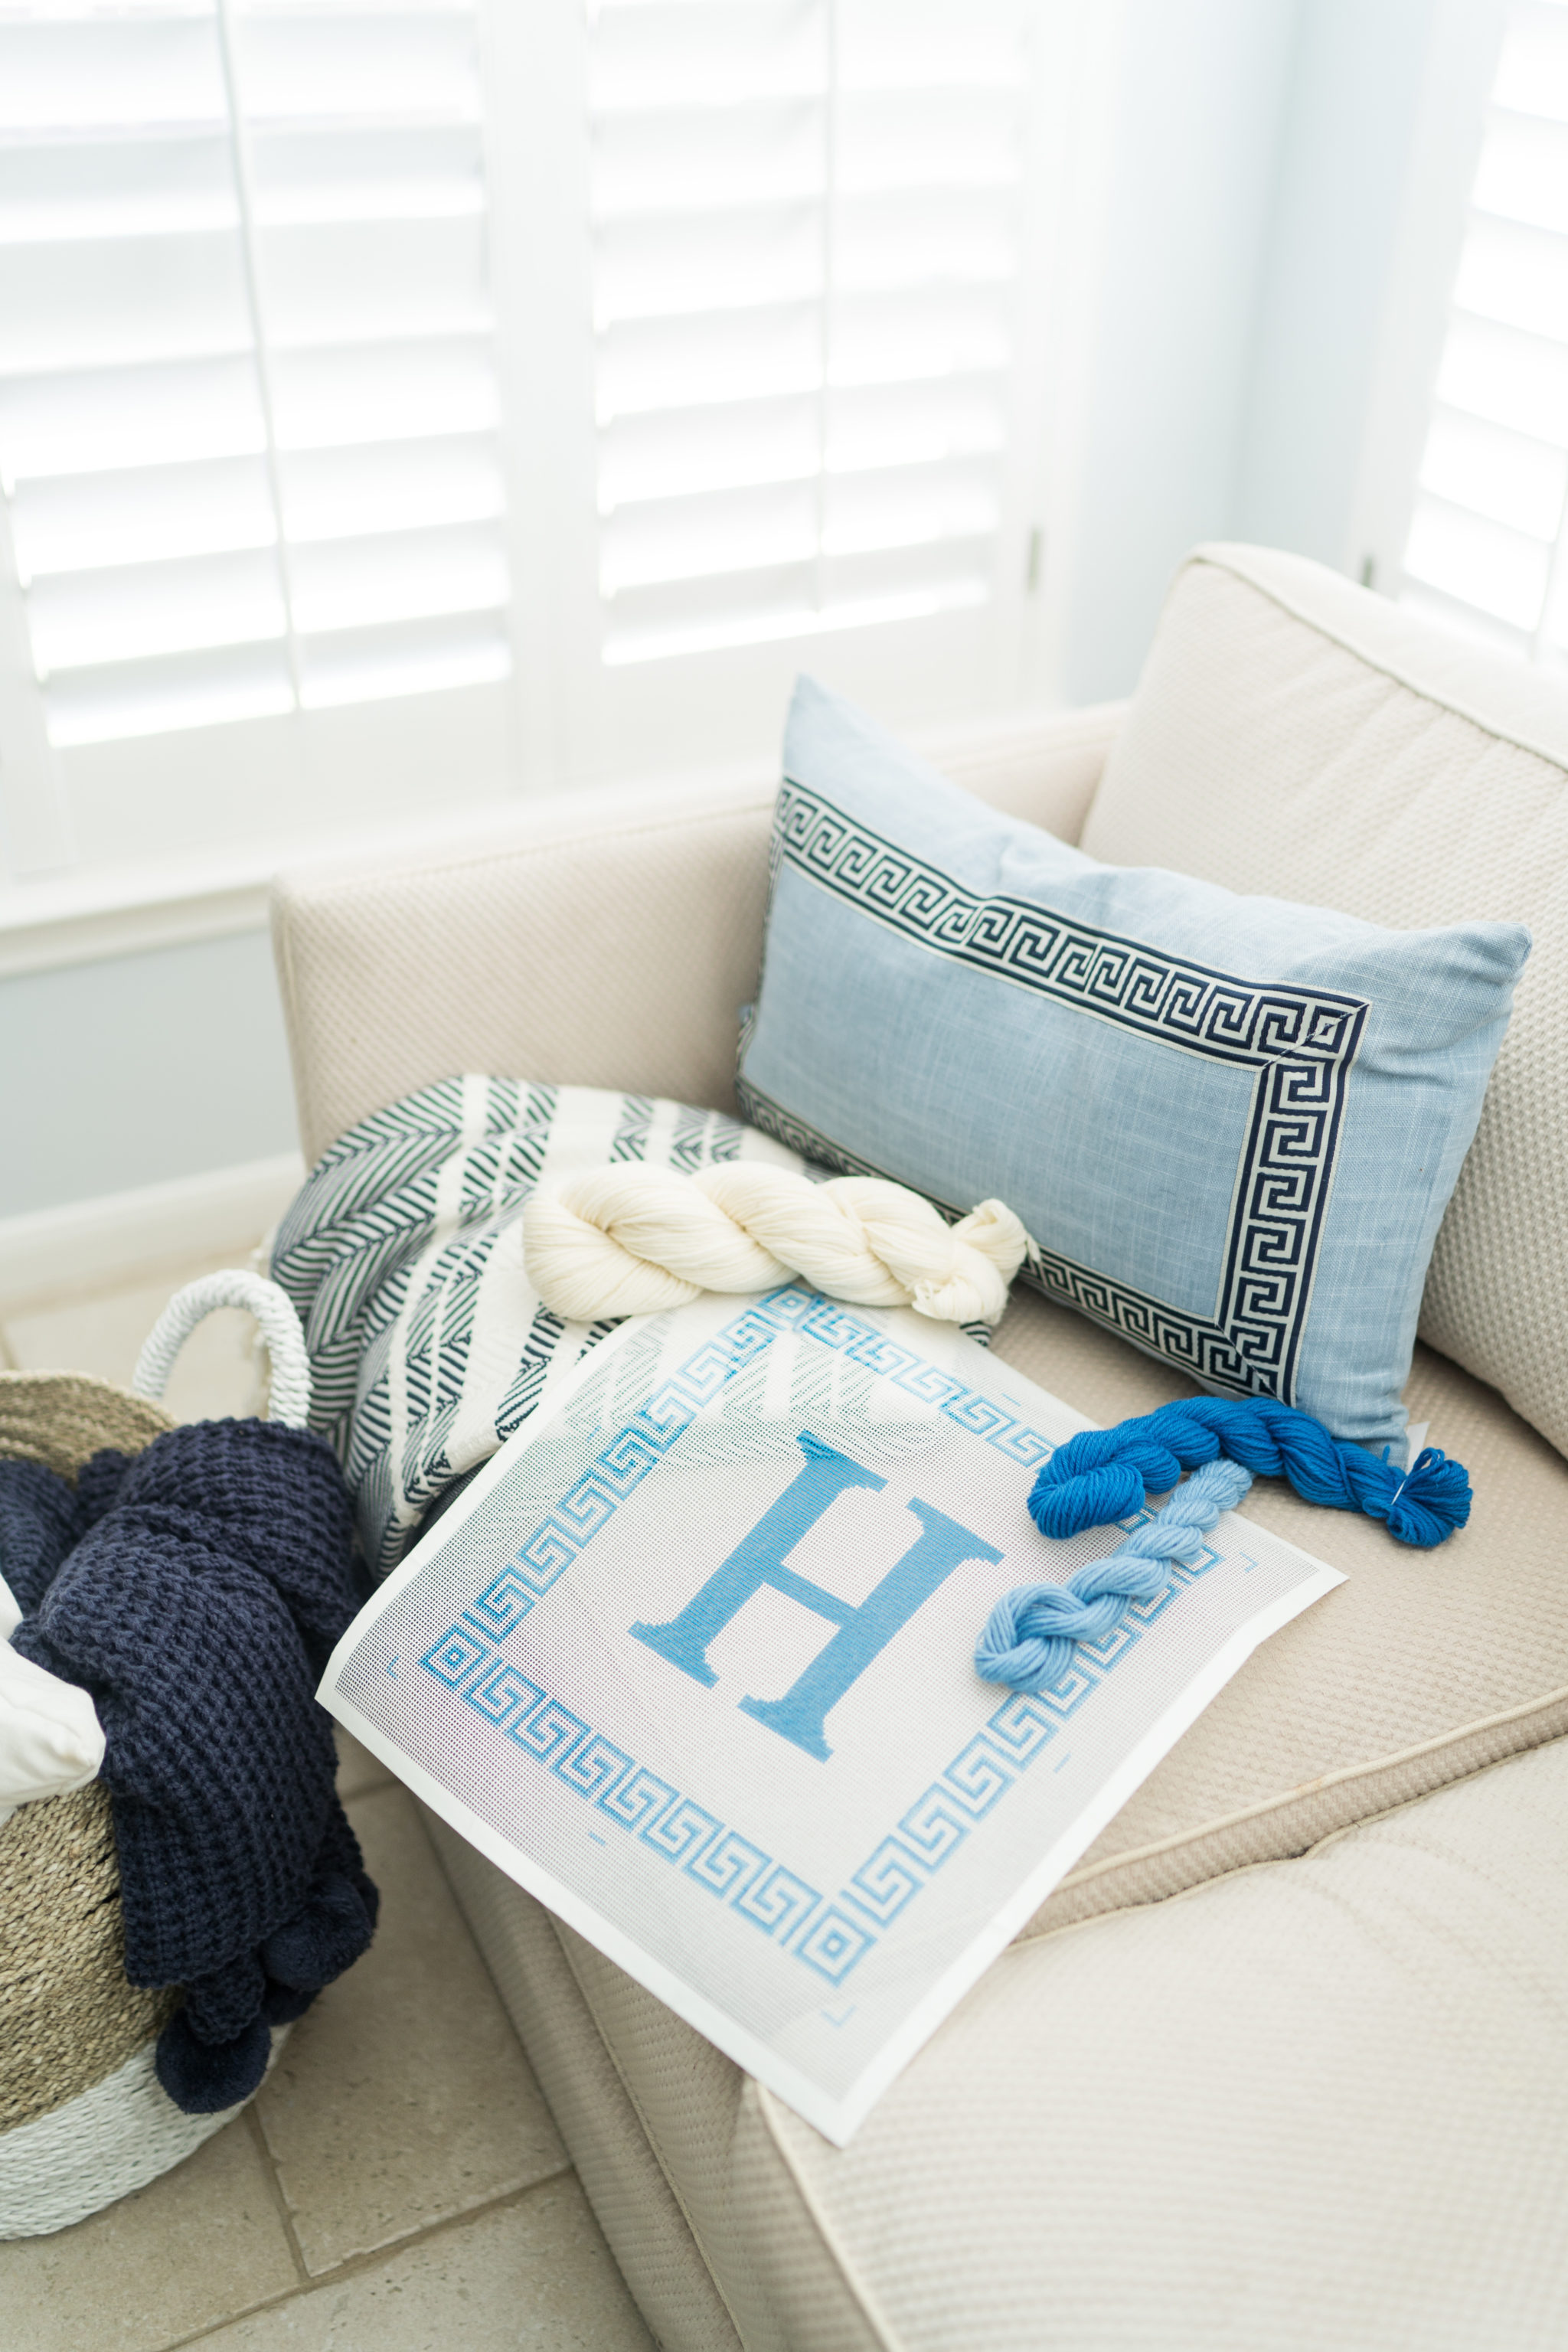 Beginners guide to needlepoint and where to find canvases